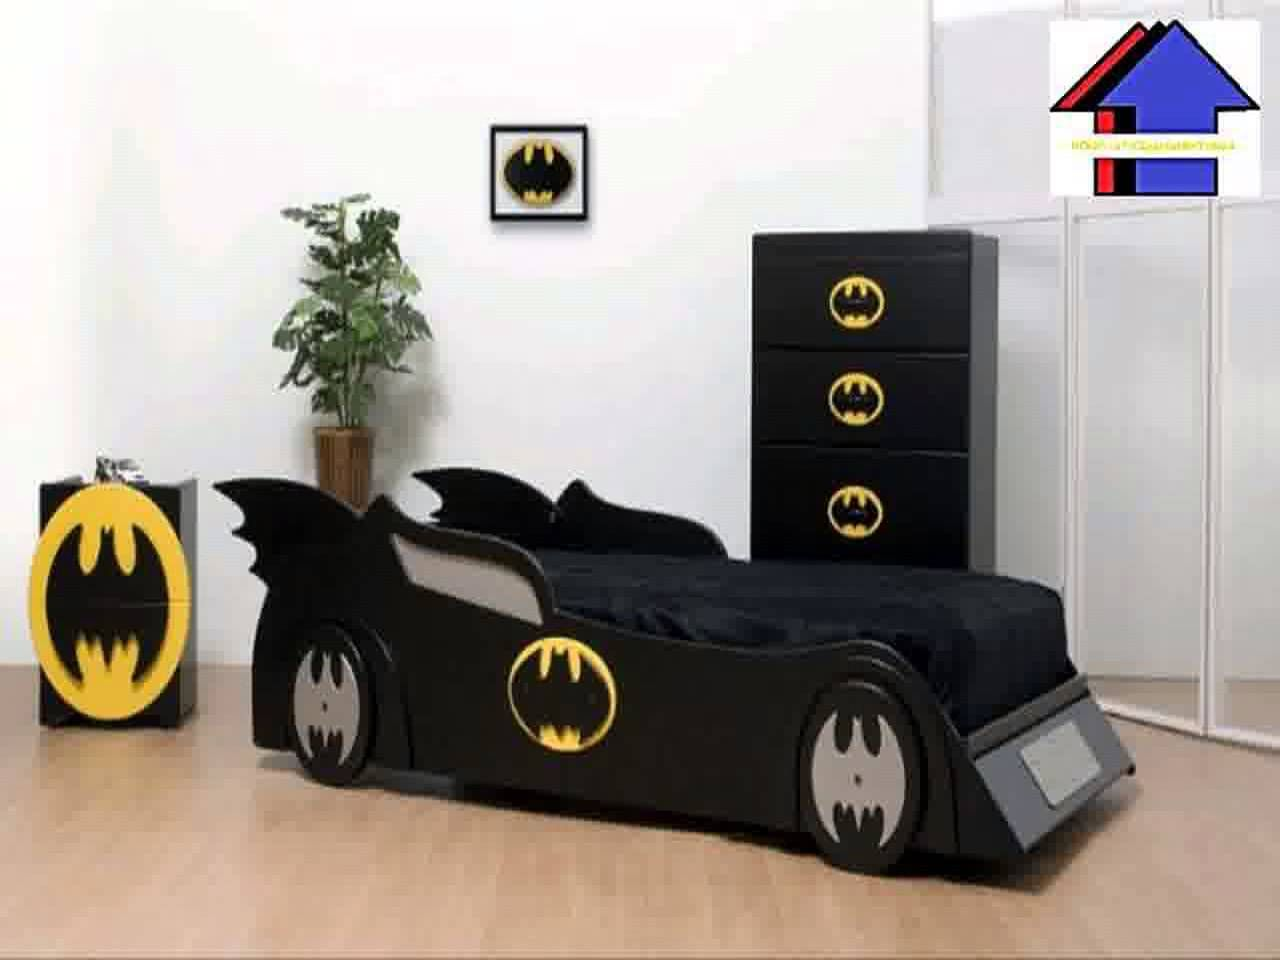 Toddler Boys Superhero Bedroom Ideas bedroom: superhero bed sets | marvel bedroom ideas | batman room